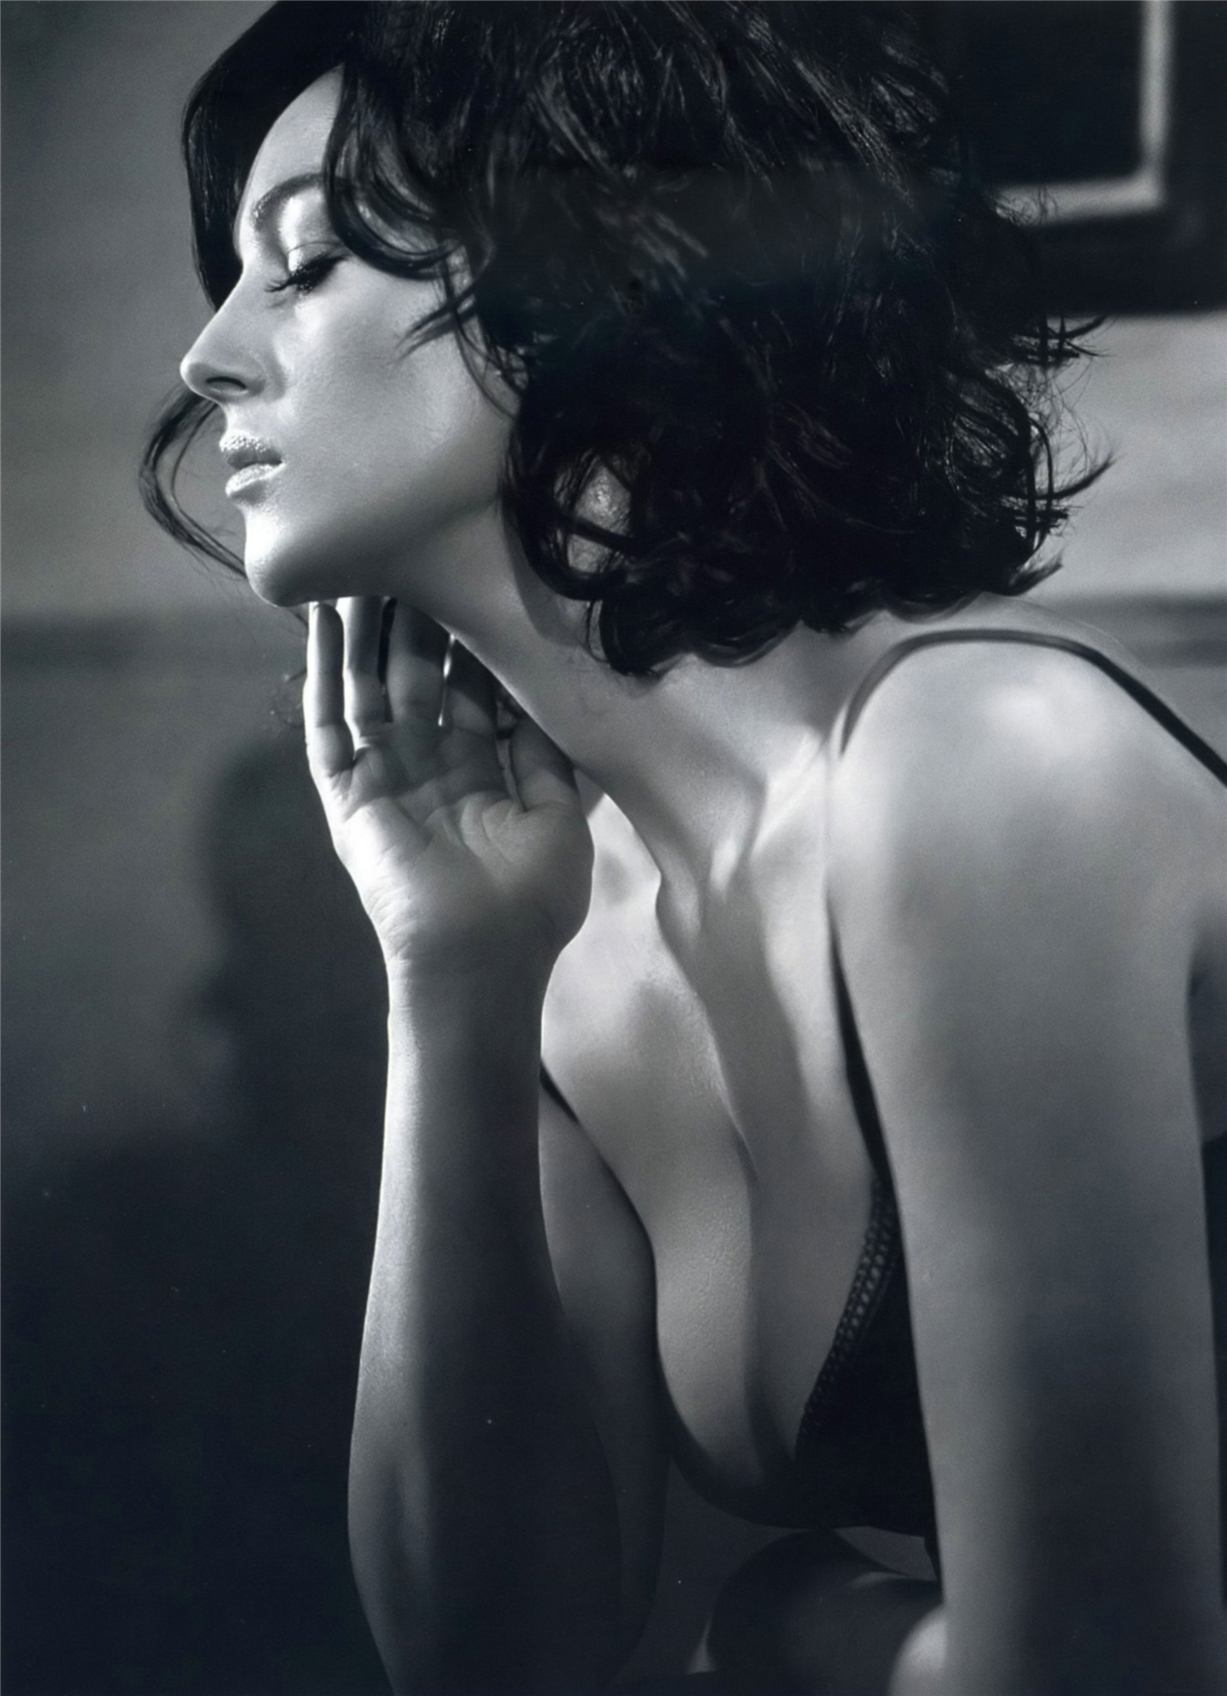 Моника Беллуччи / Monica Bellucci in GQ november 2008